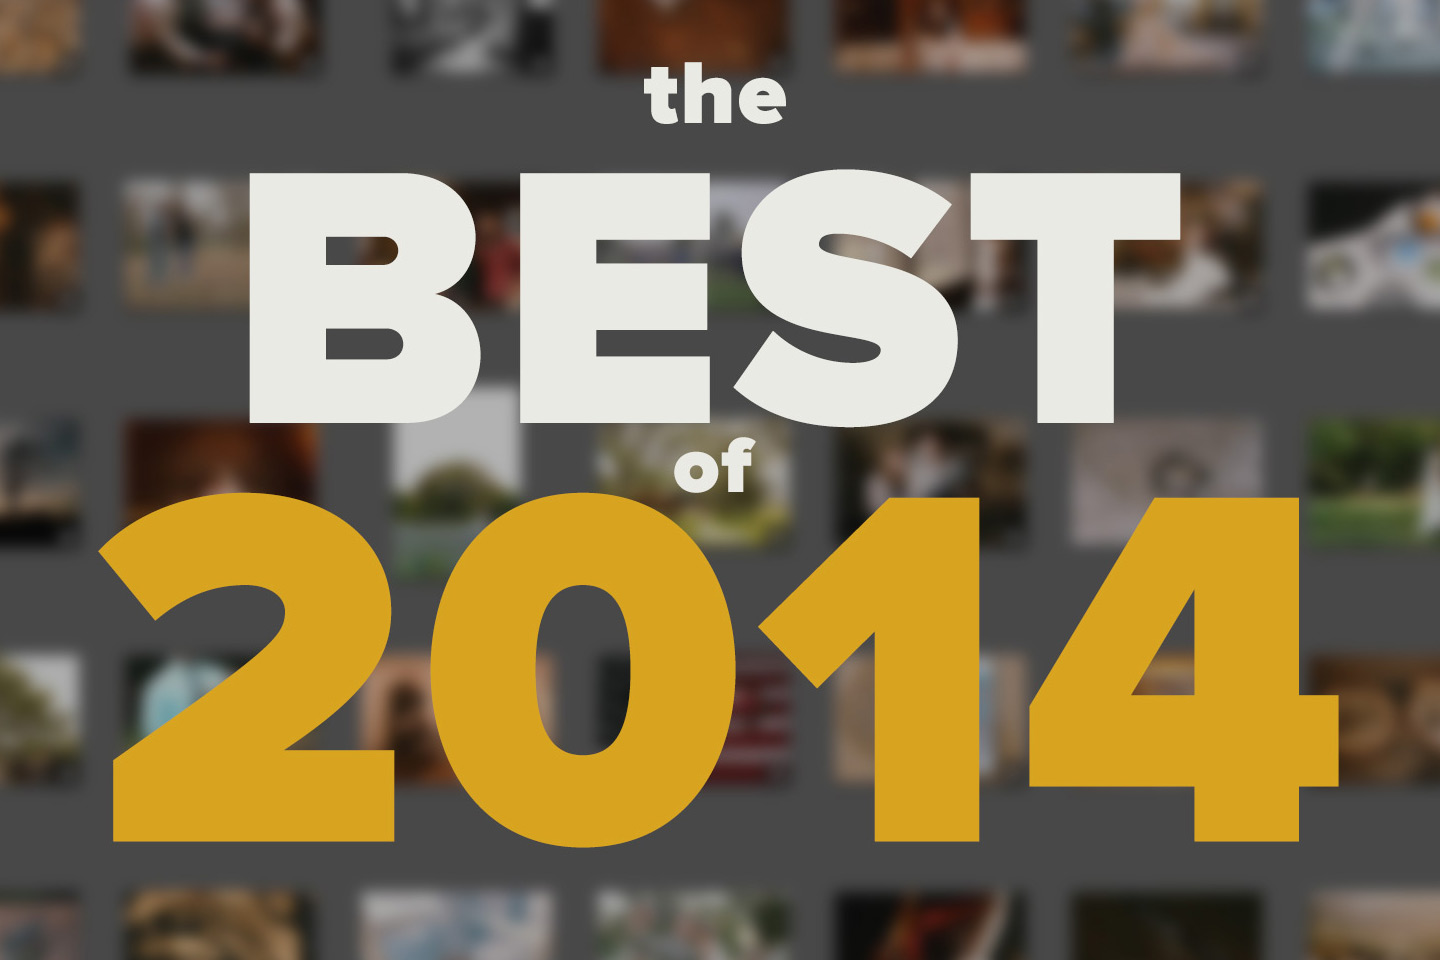 13261top 10 2014 | the winners!